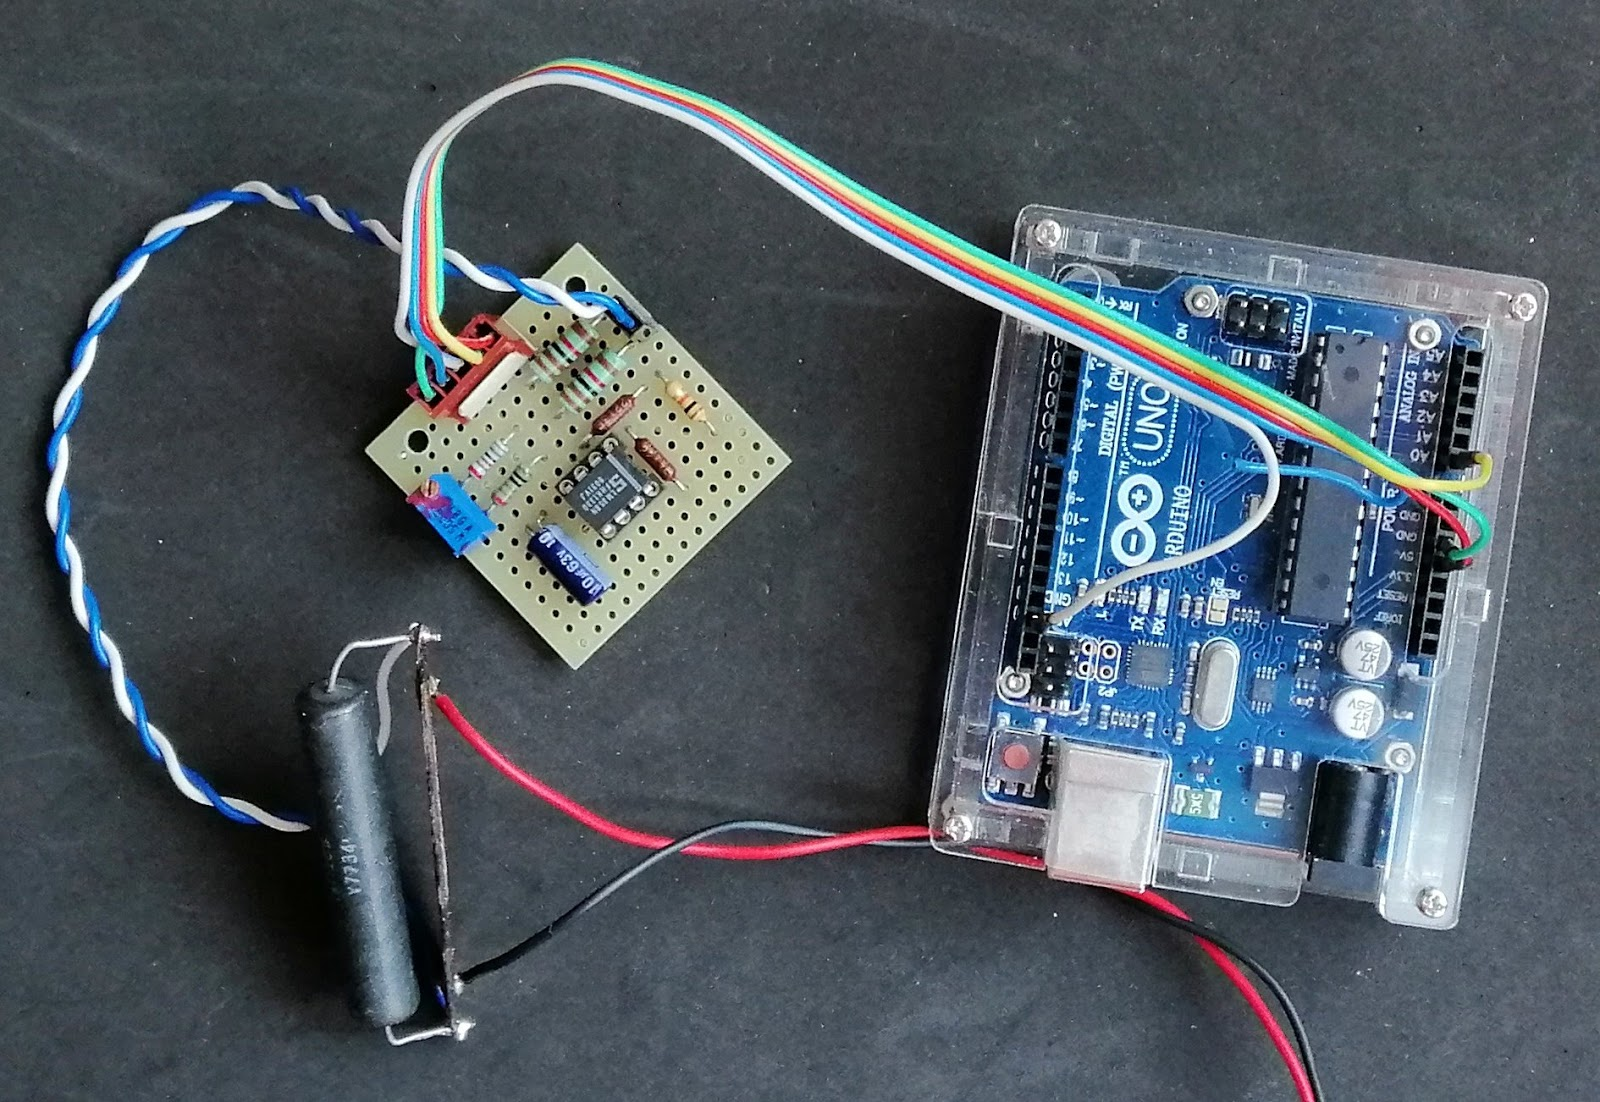 ArduPicLab: A simple circuit for measuring electrical current with